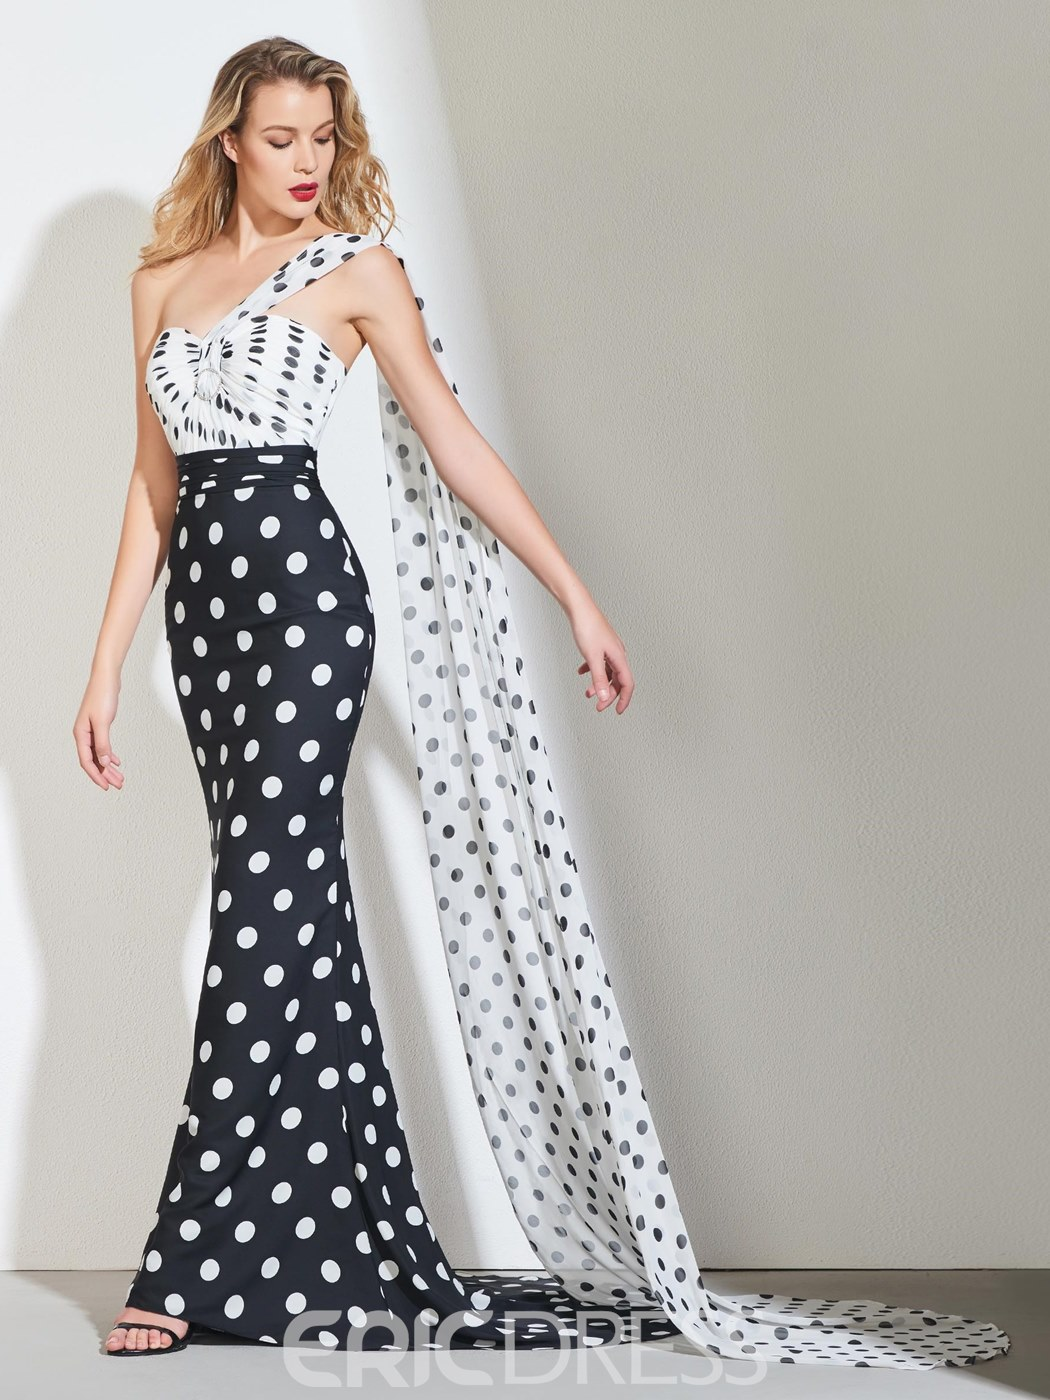 Ericdress Sweetheart Black And White Printed Mermaid Evening Dress